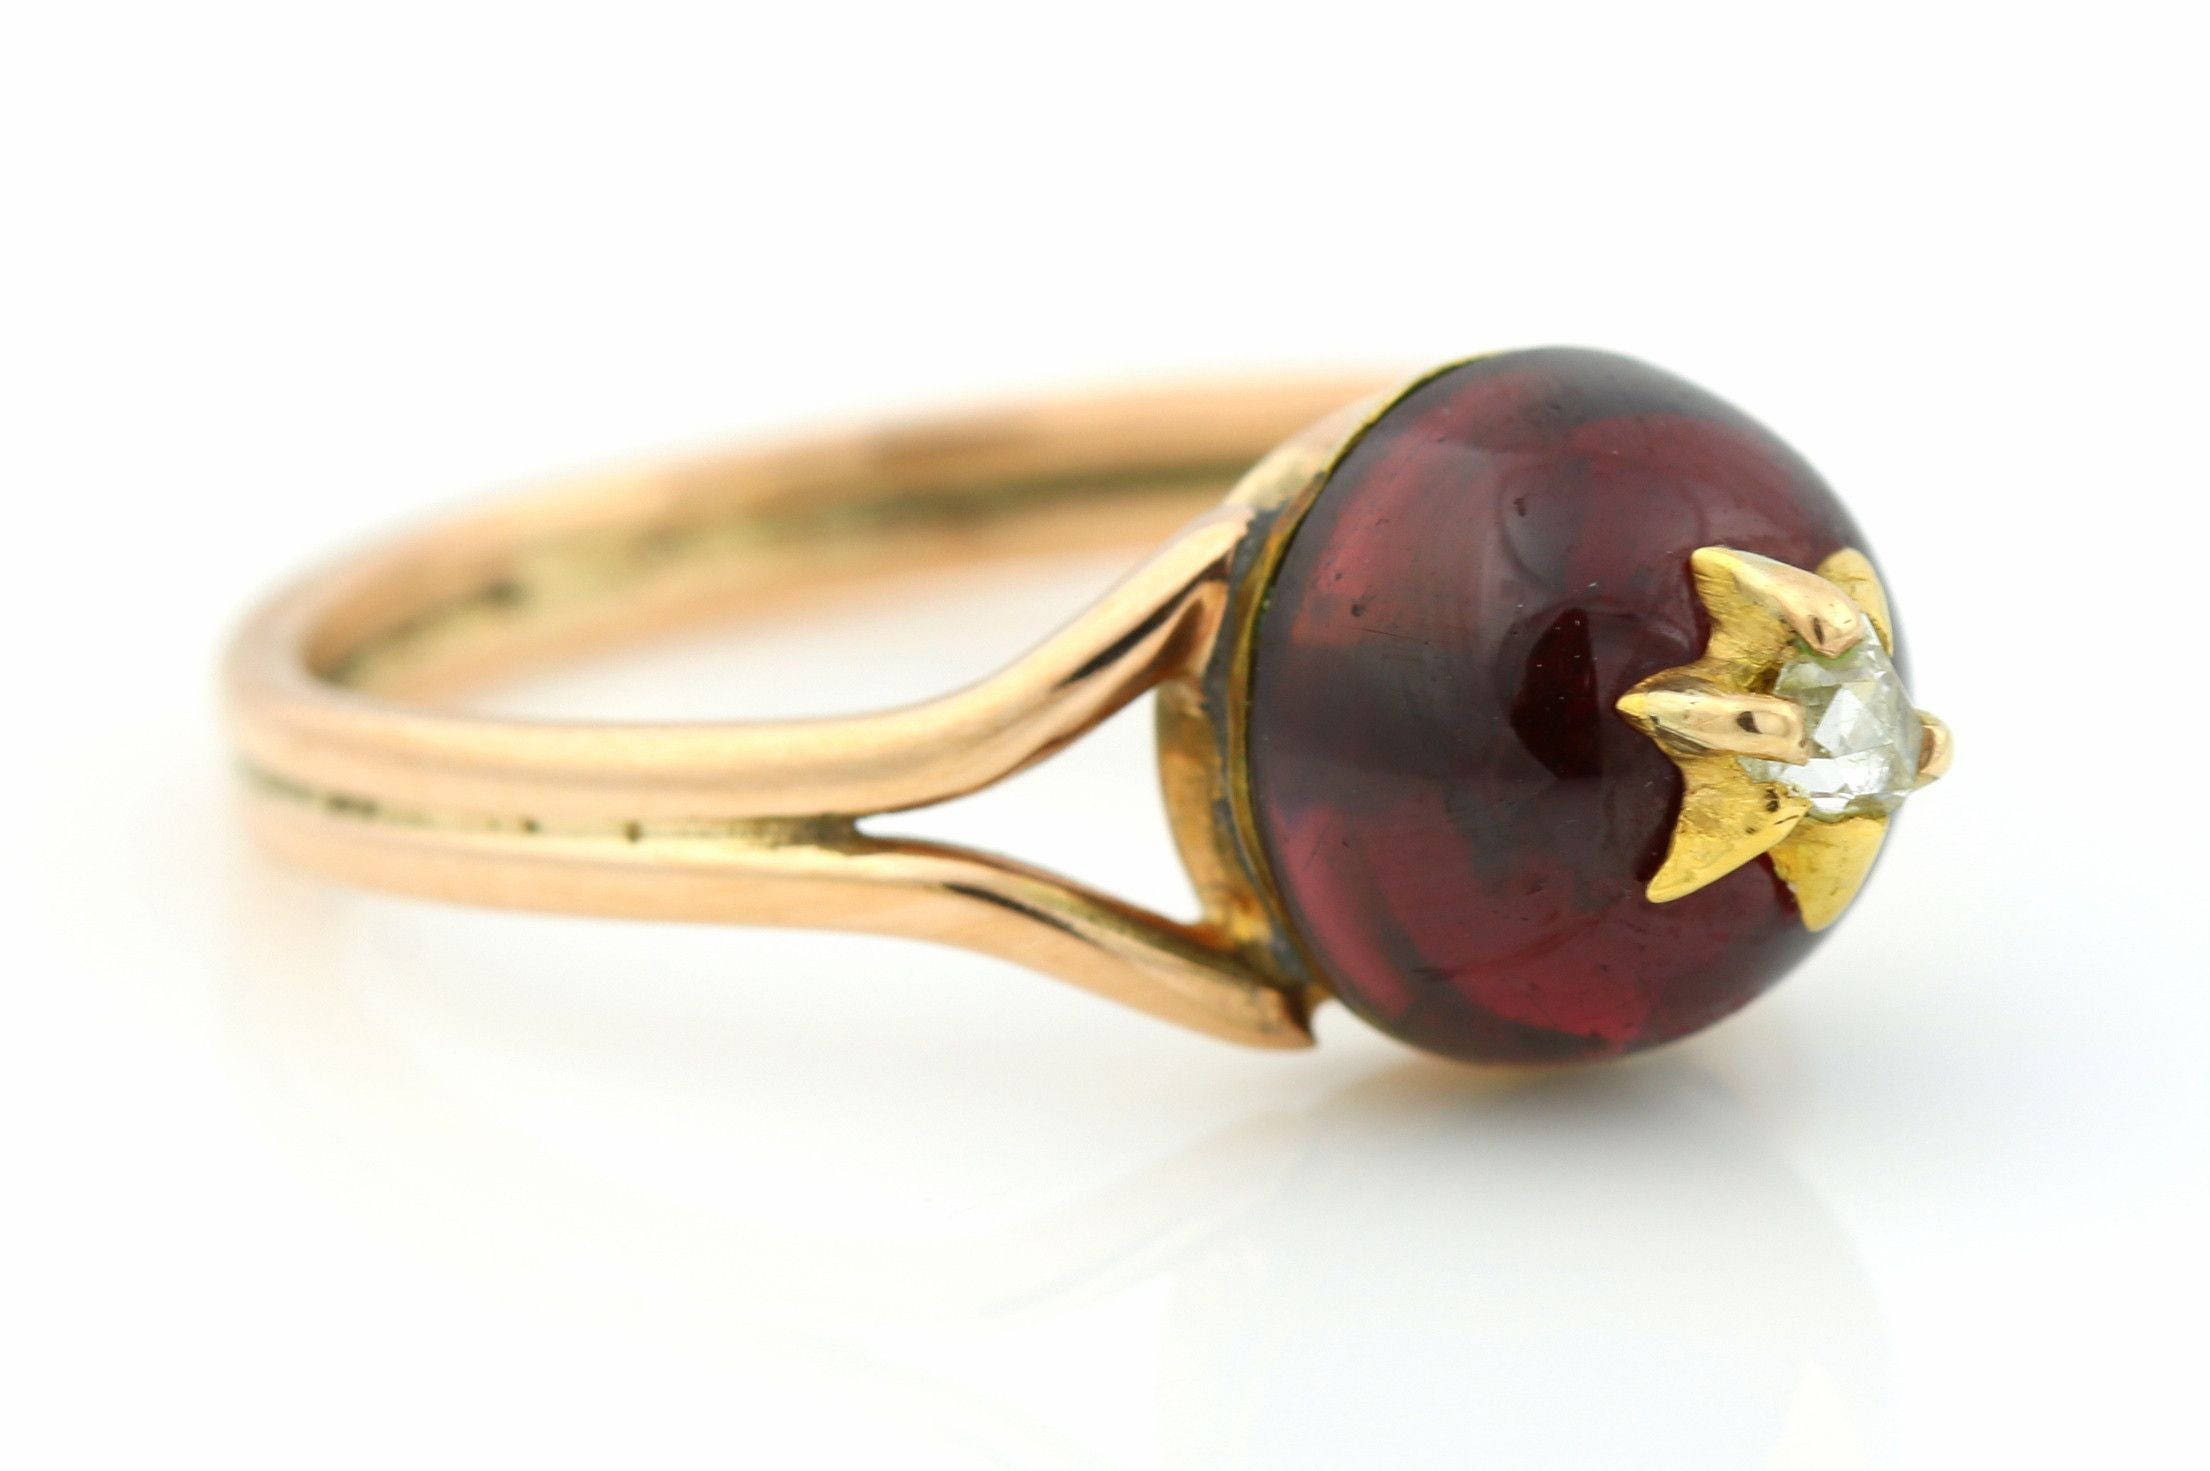 ON LAYAWAY for E Antique 9ct Gold Garnet  Diamond Ring Victorian Garnet and Diamond Ring Circa 1840 Antique Garnet Cabochon Ring